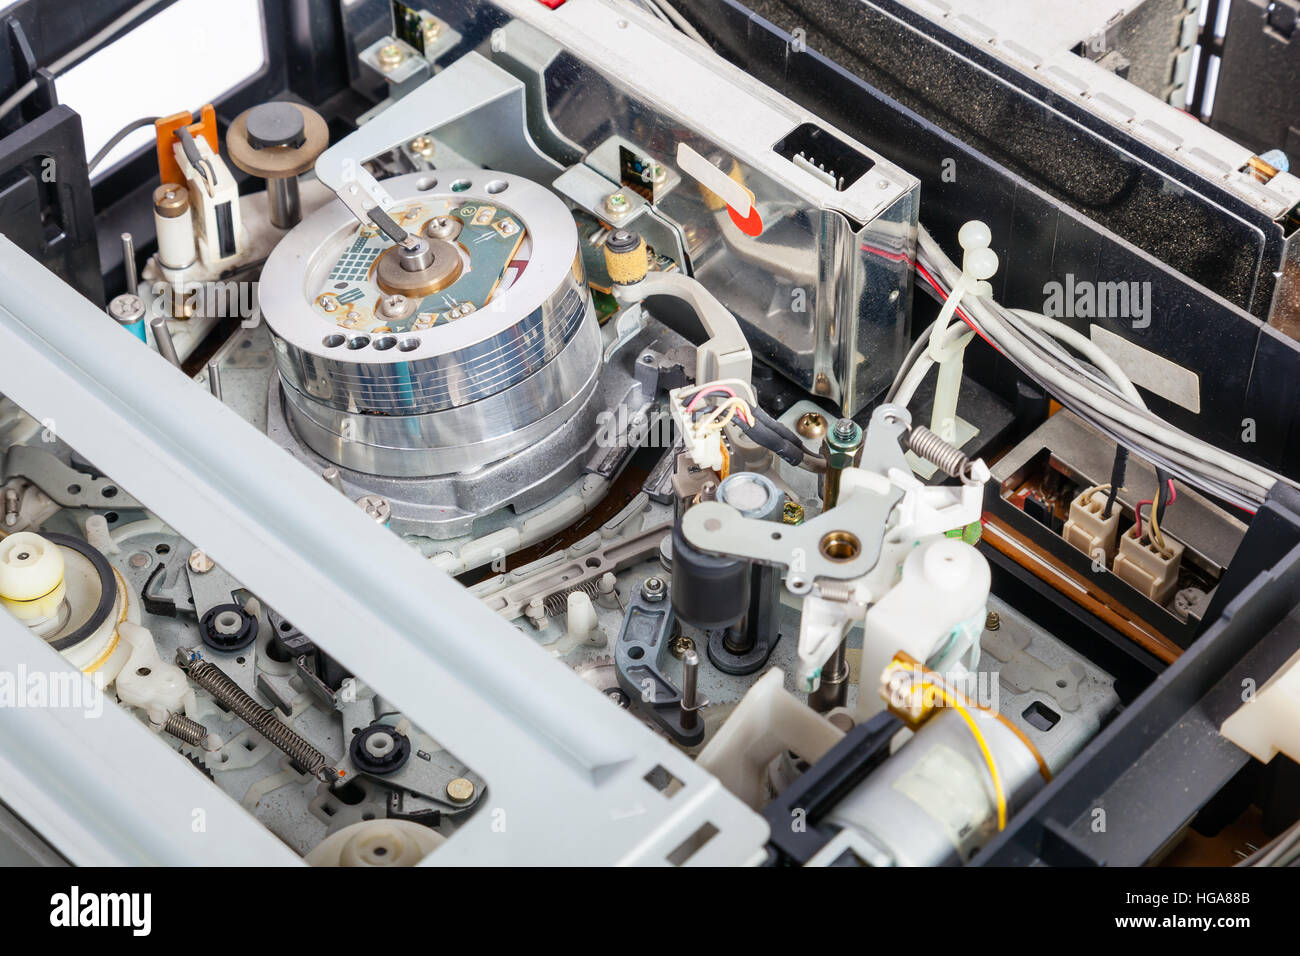 Interior of the mechanics of an old and obsolete VCR or Video Cassette Recorder - Stock Image